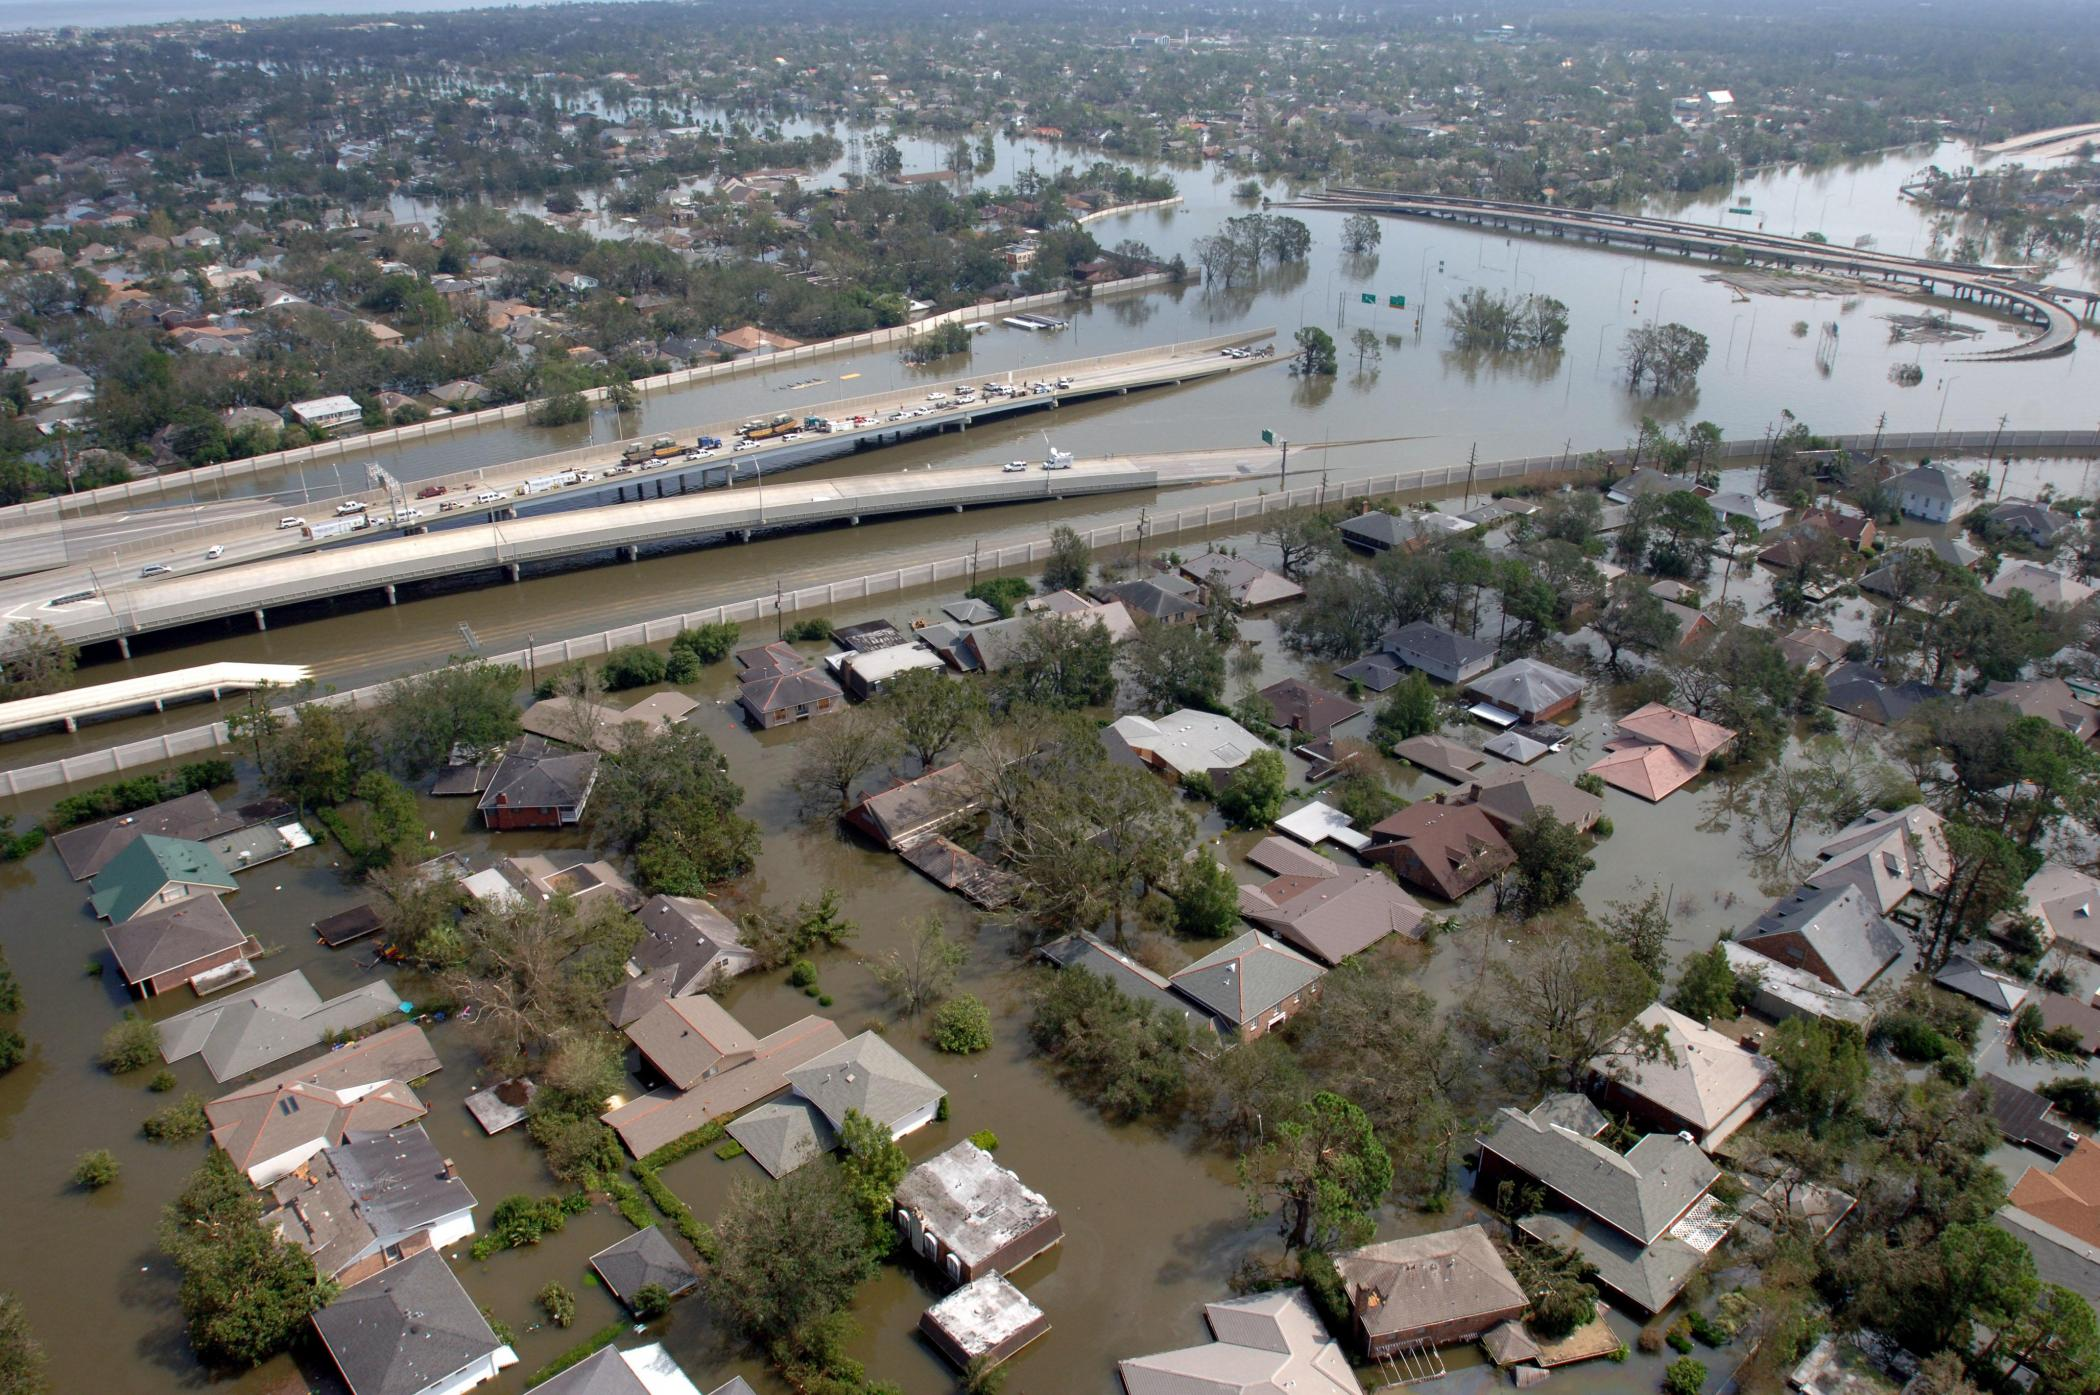 Flooded houses and highway shown from above, horizon in the distance